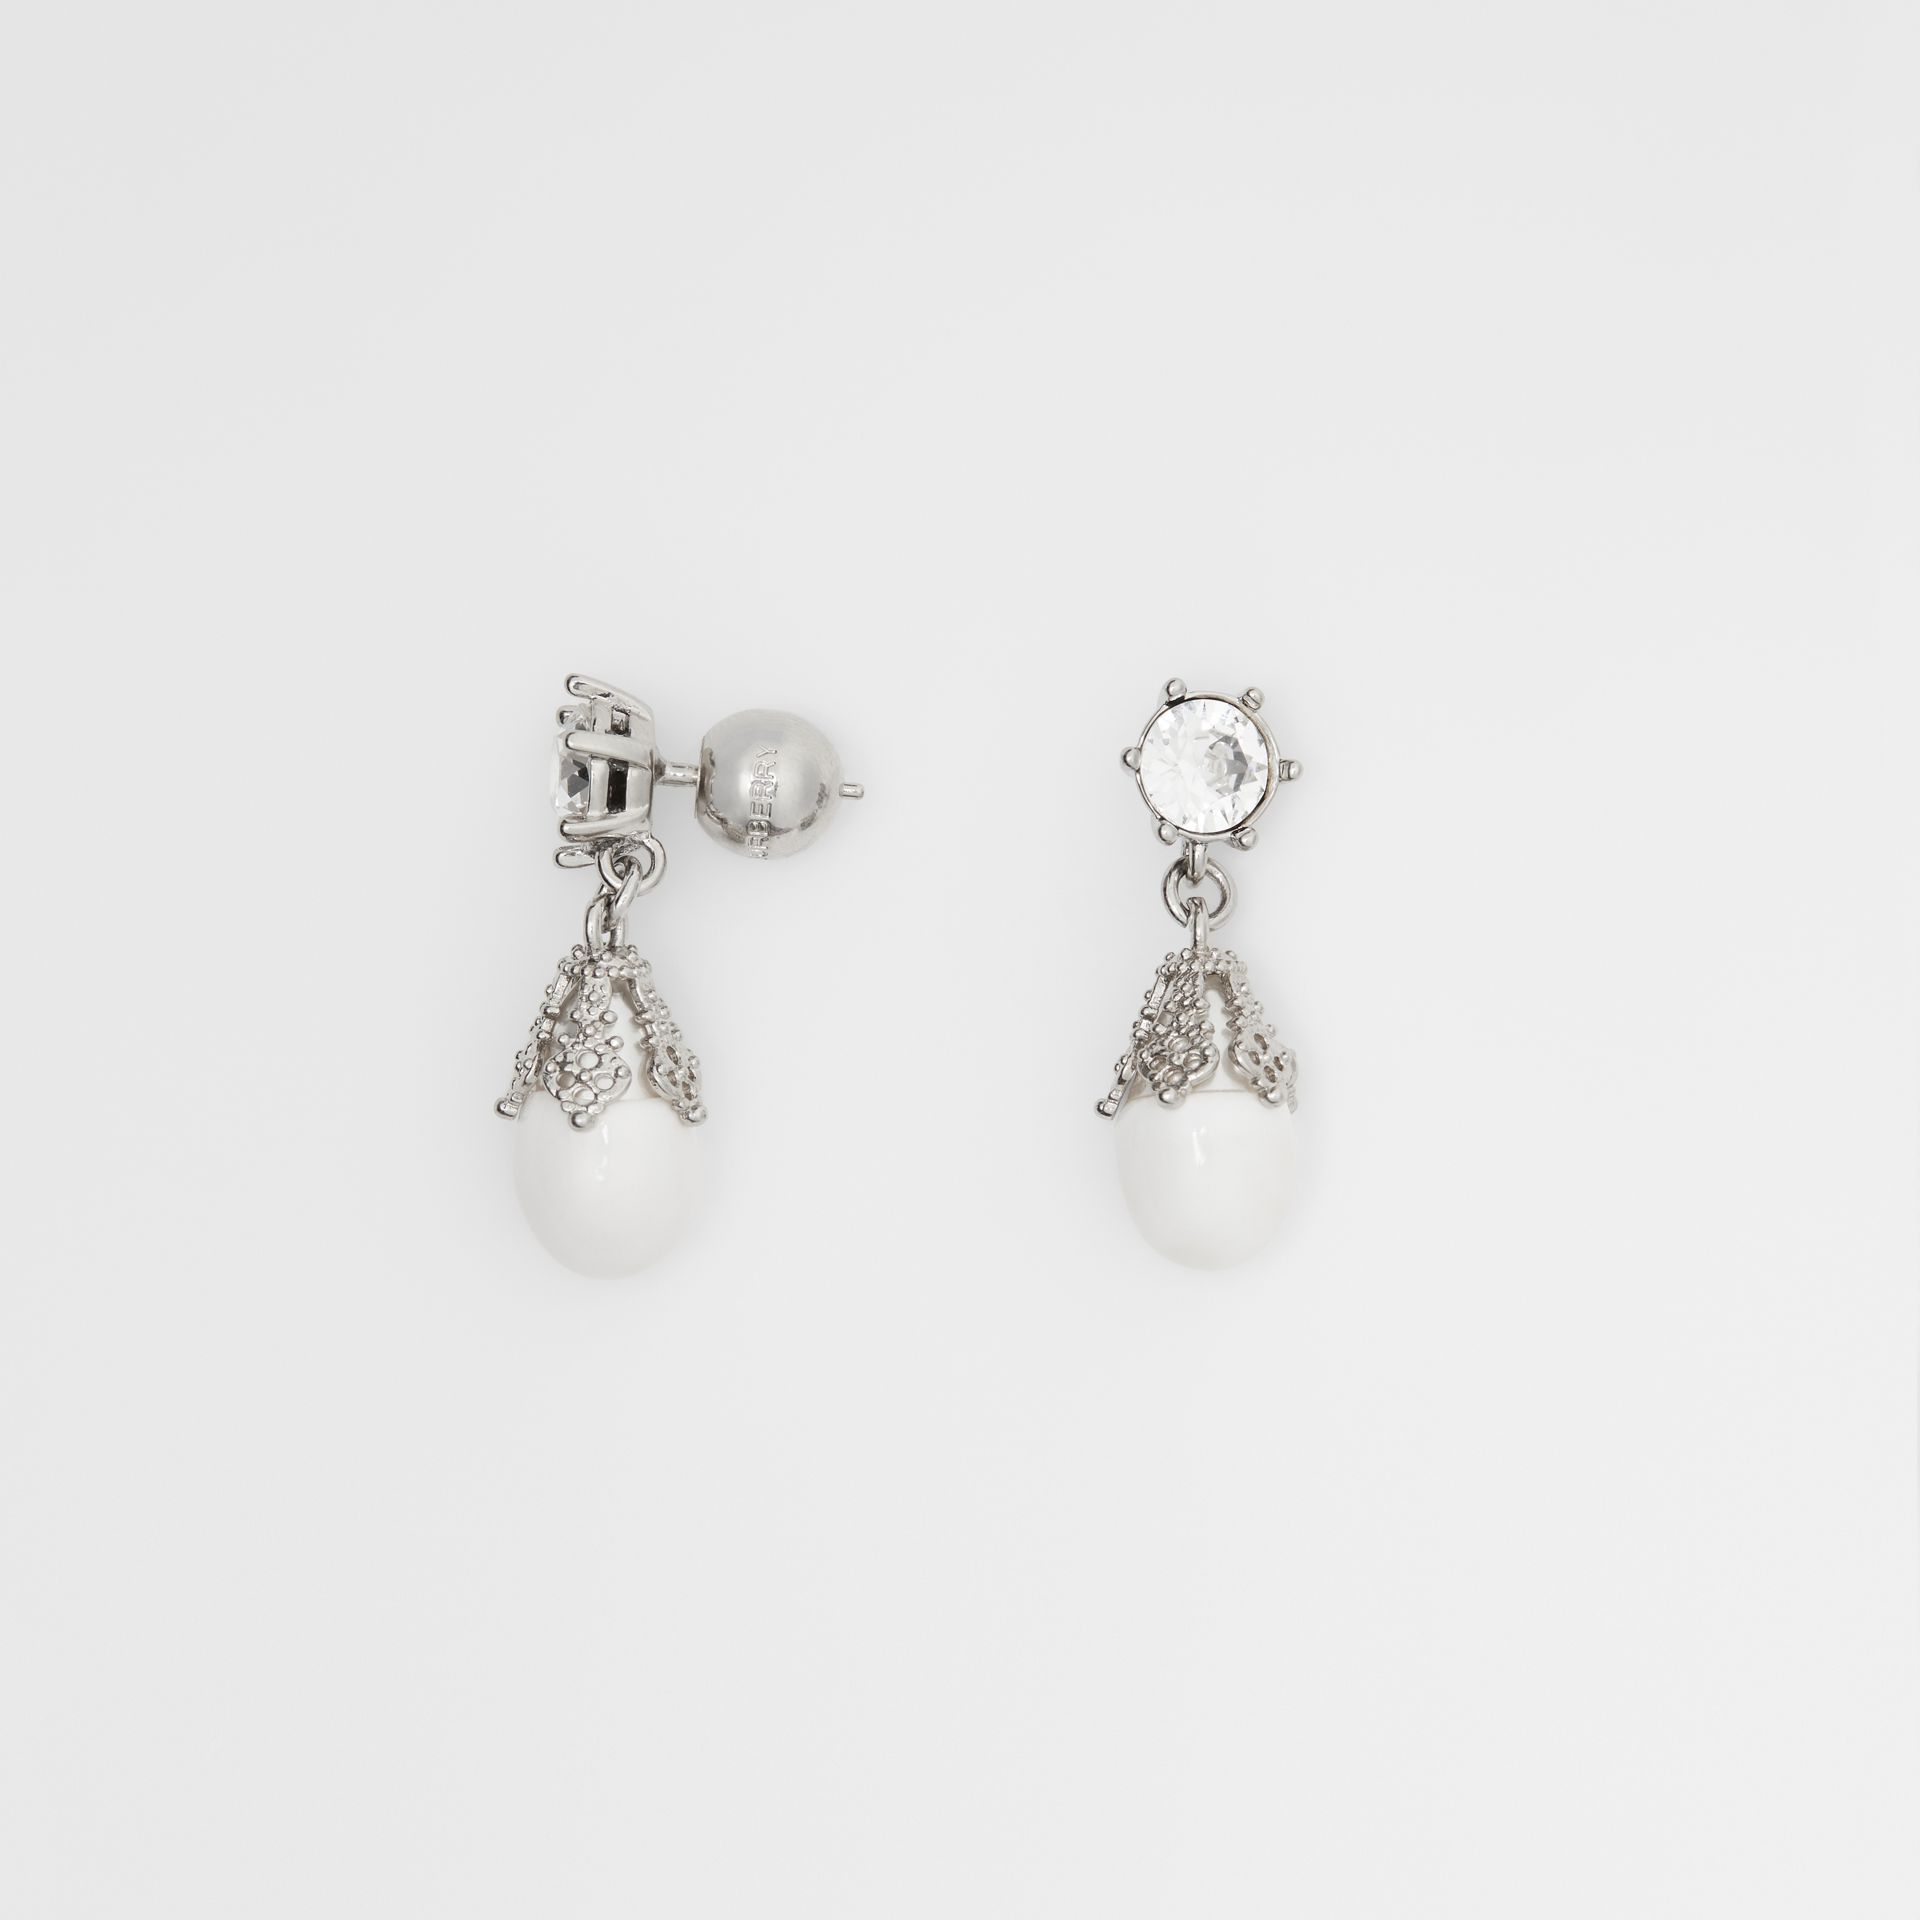 Palladium-plated Faux Pearl Charm Earrings in White/palladium - Women | Burberry United States - gallery image 3